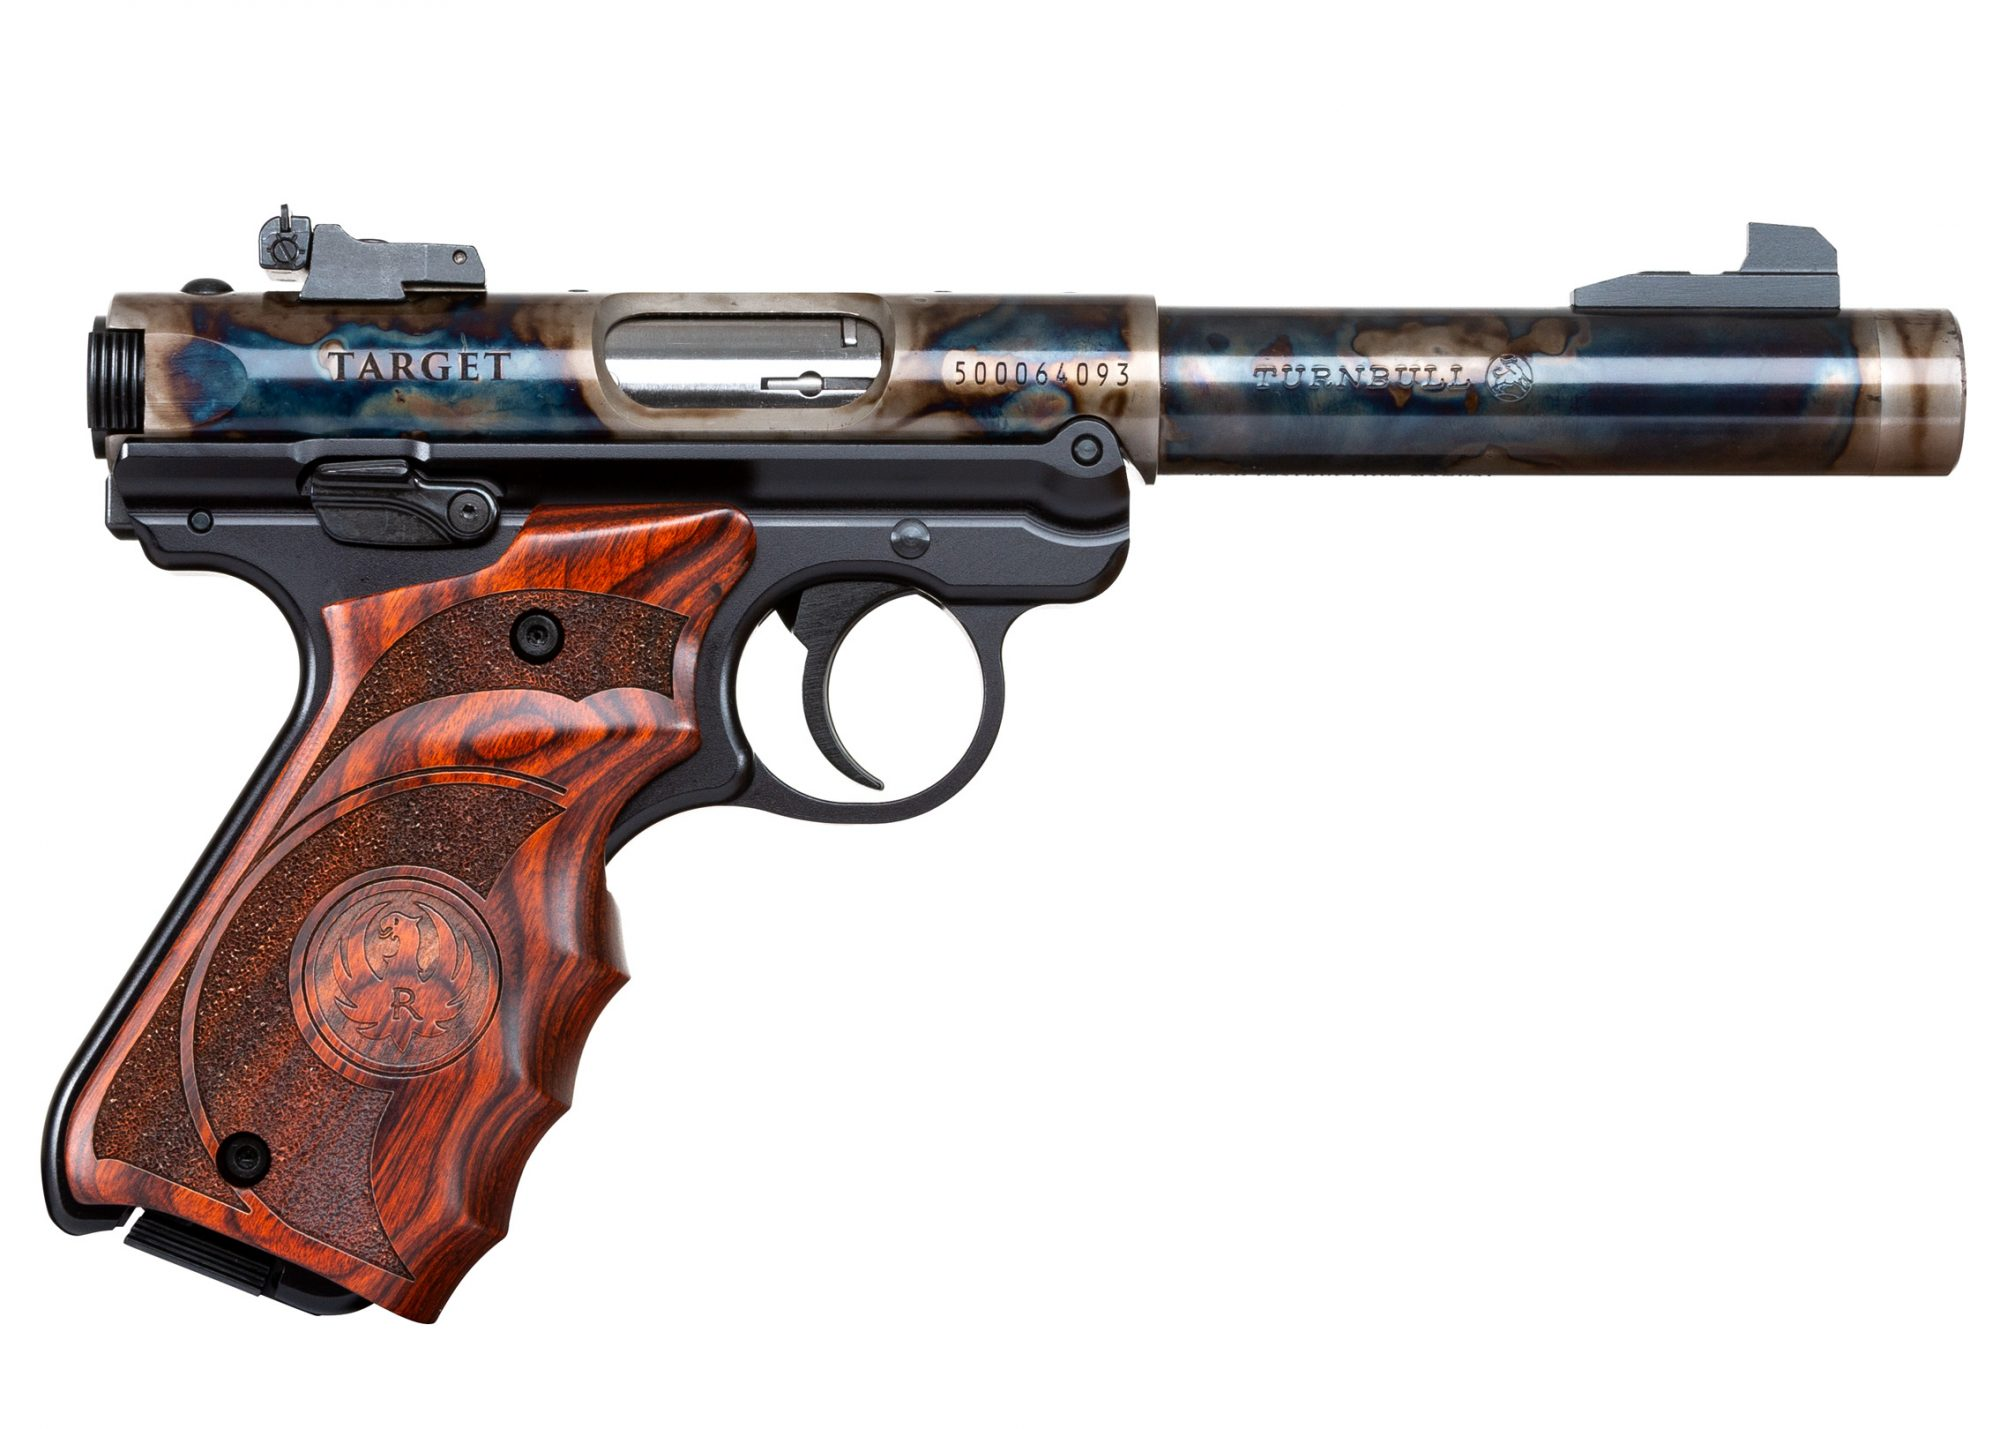 Turnbull Finished Ruger Mark IV with Wood Grips and Threaded Barrel